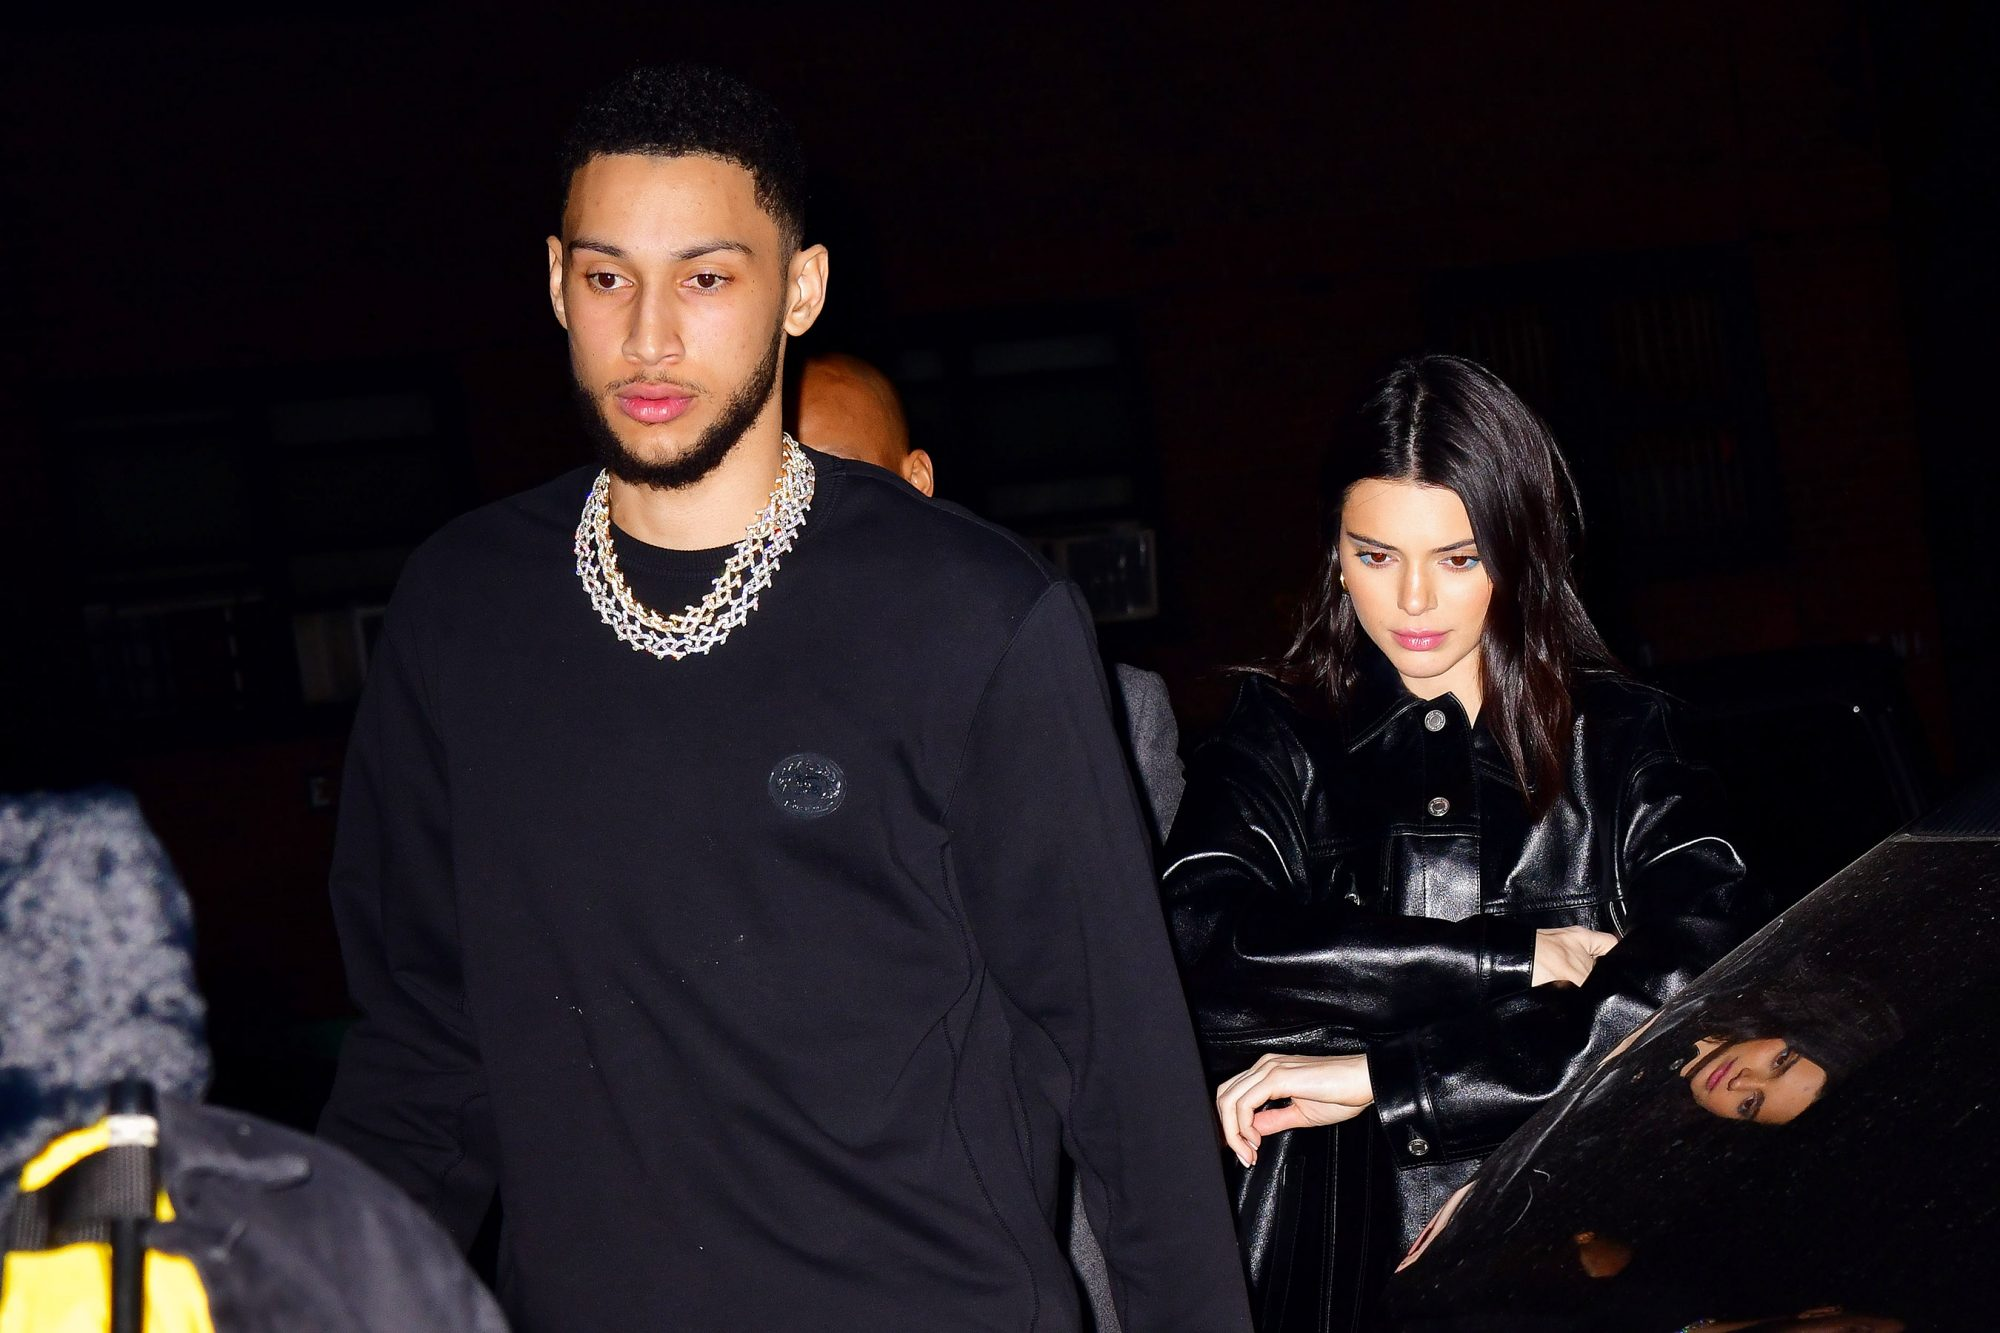 Kendall on Her Private Relationship with Ben Simmons & 'Maybe' Marrying in the Future